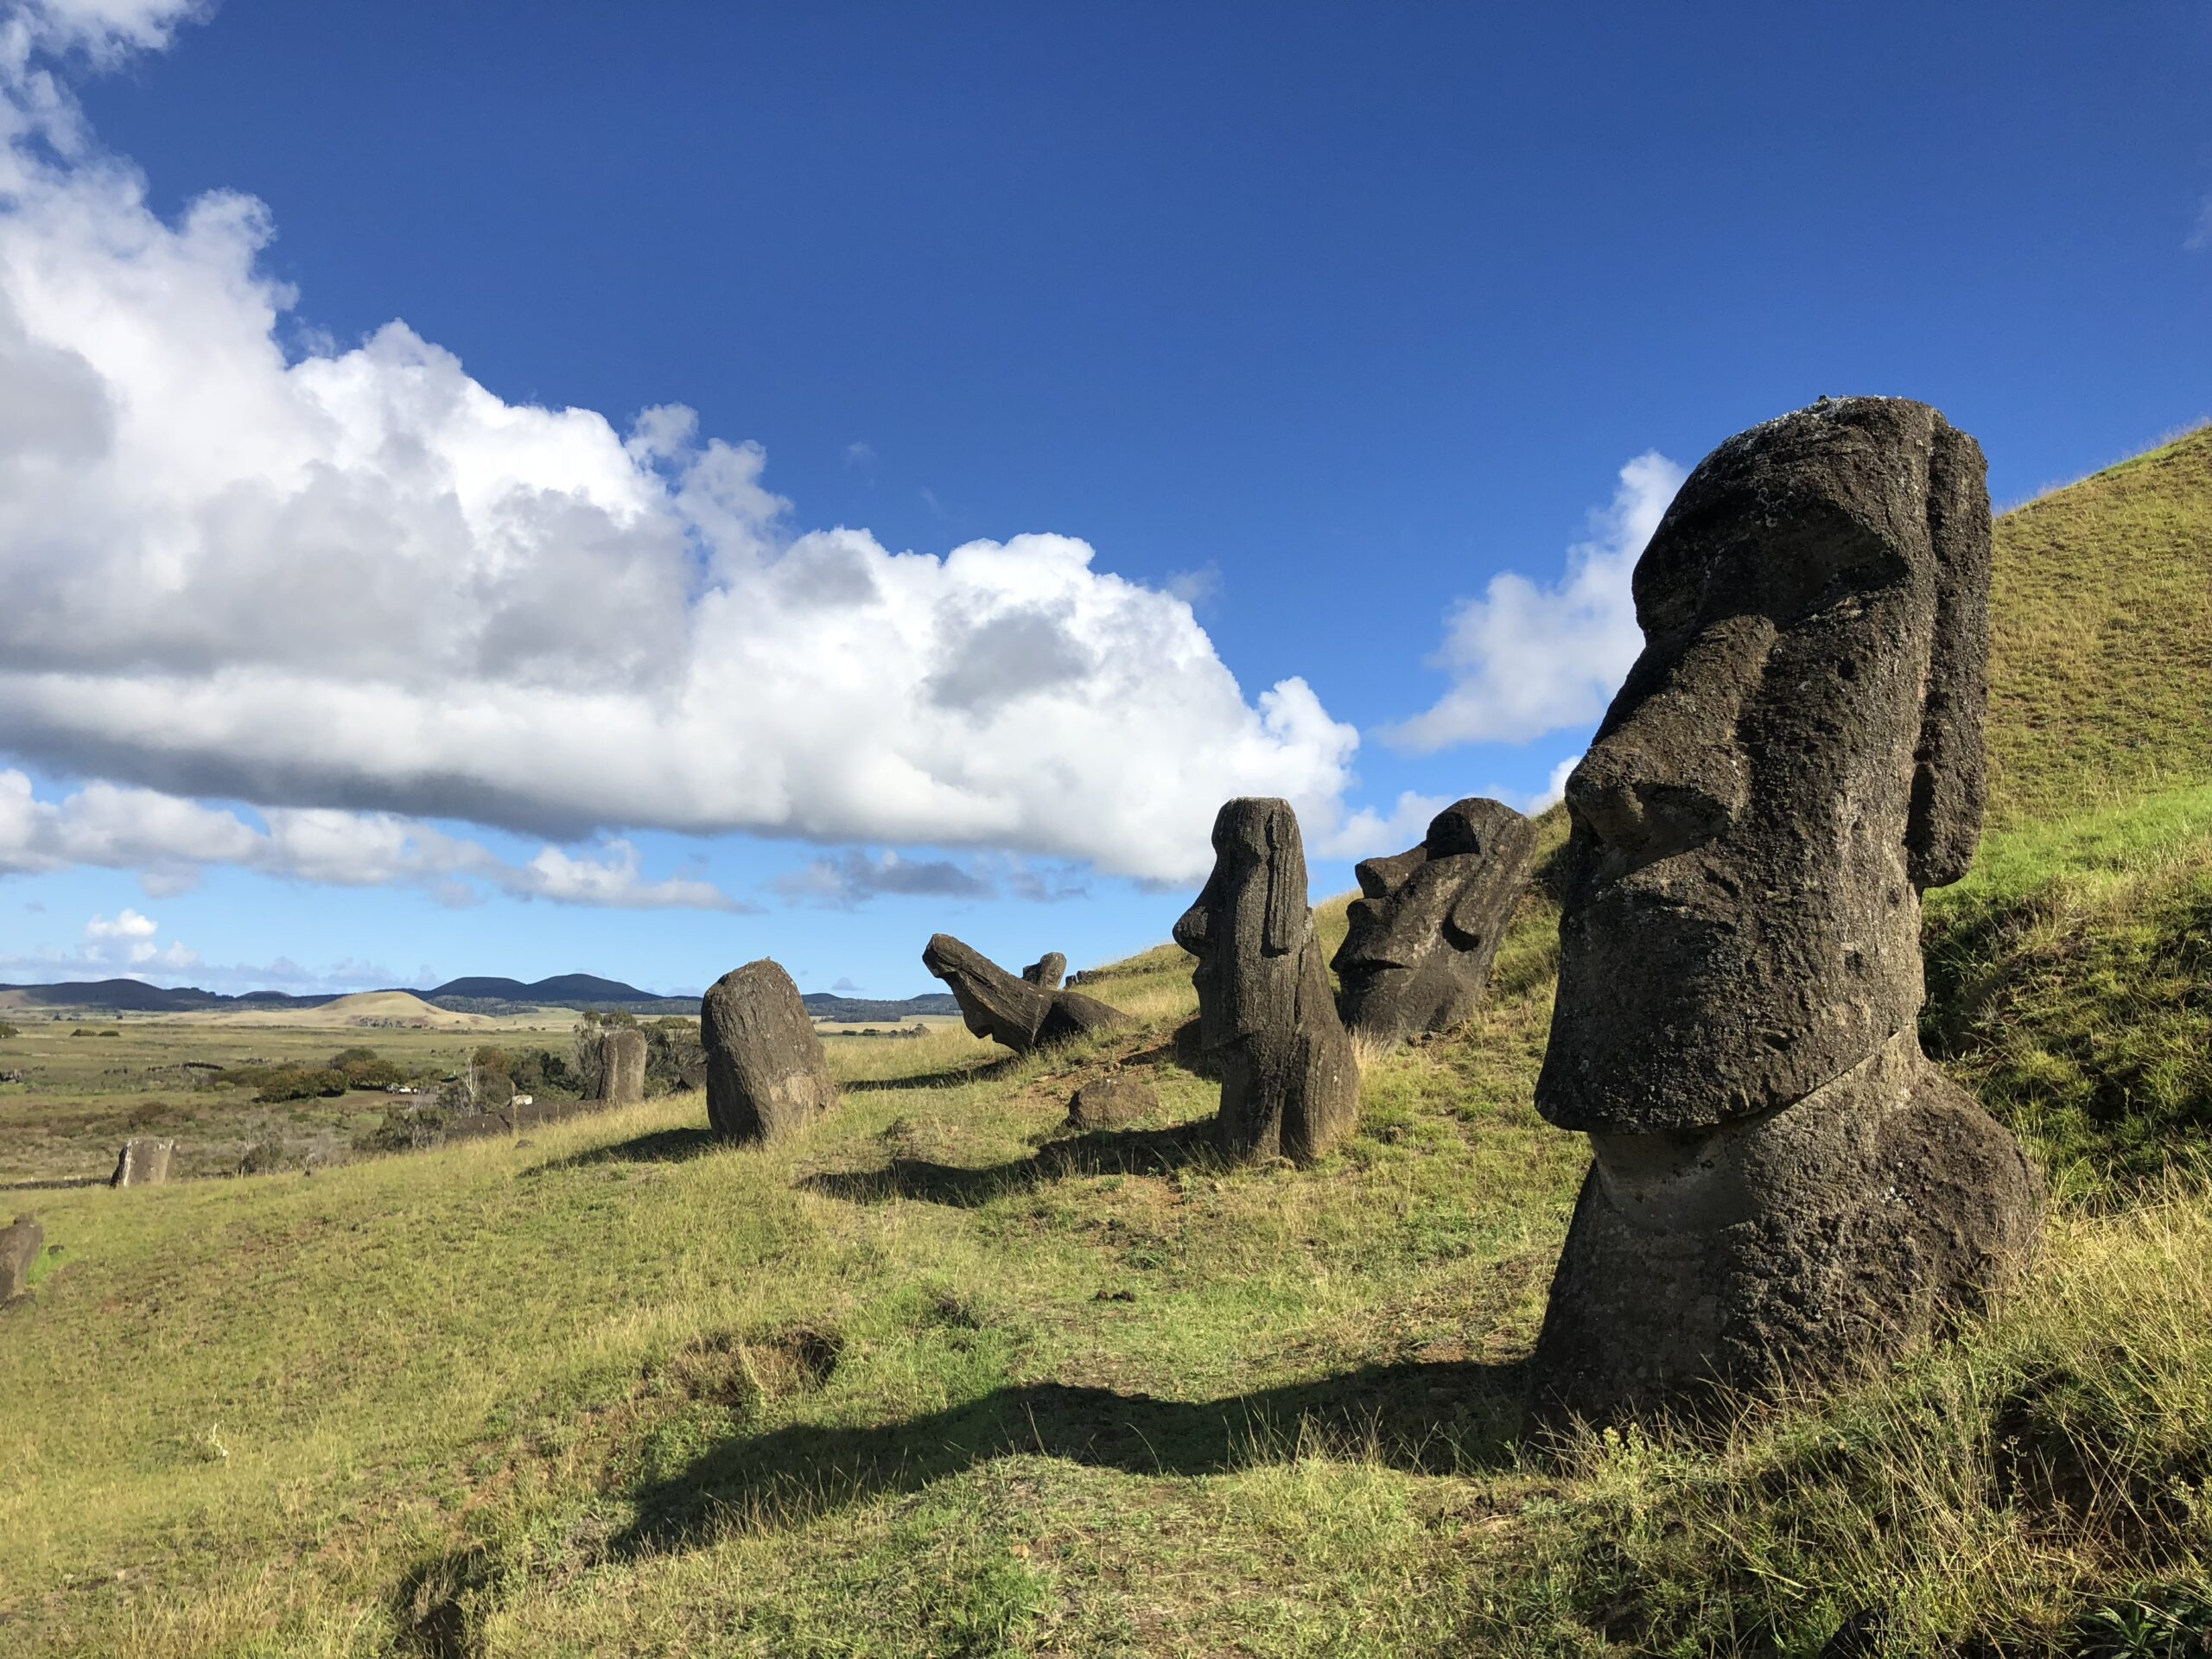 Image of Moai statues in a field.